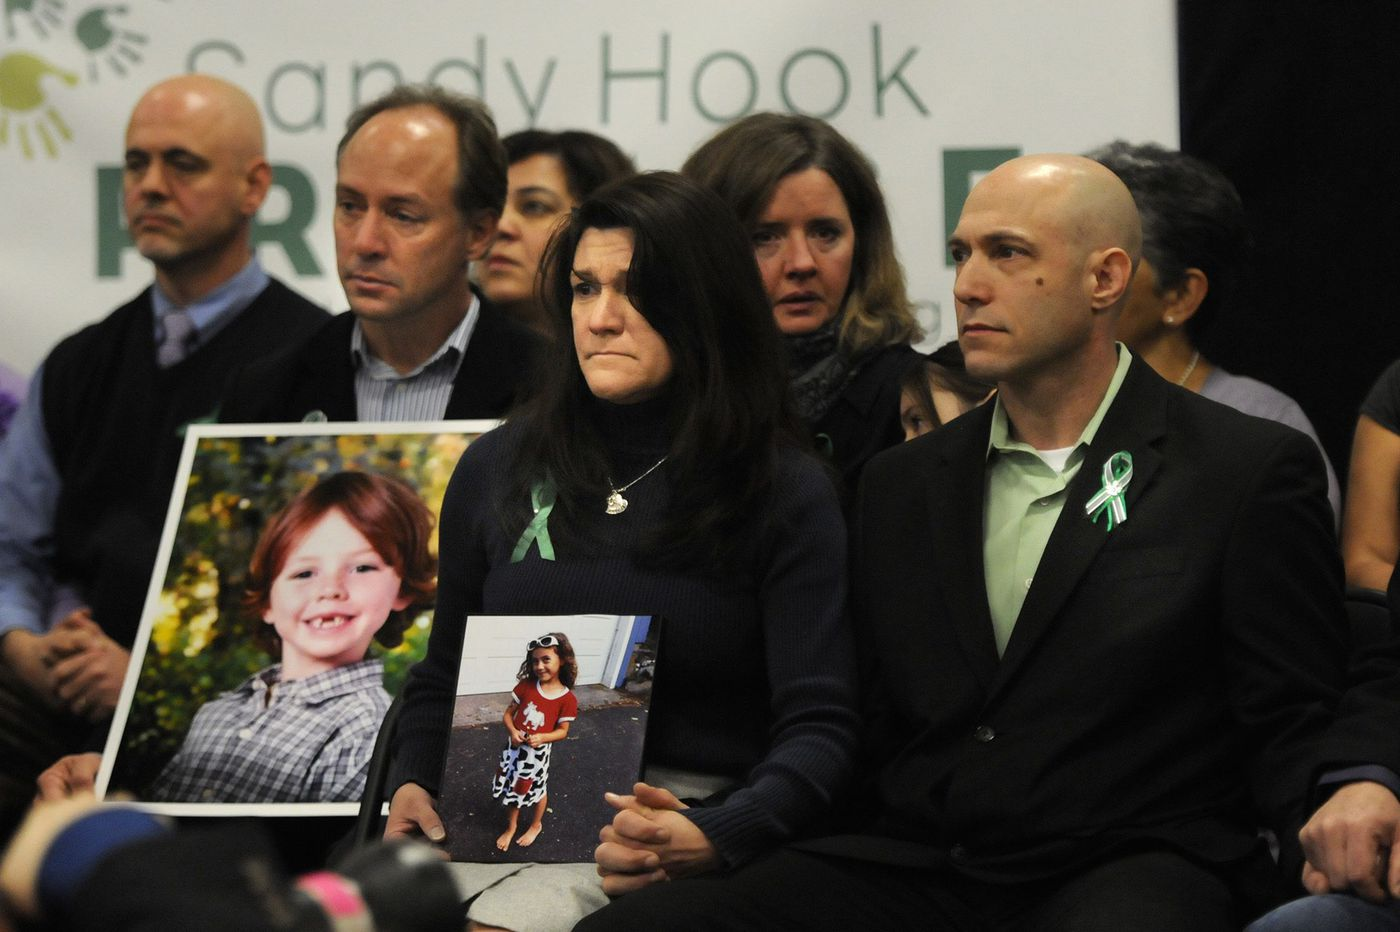 Father of Sandy Hook victim is latest mass-shooting survivor to be found dead. What are the signs of possible suicide?